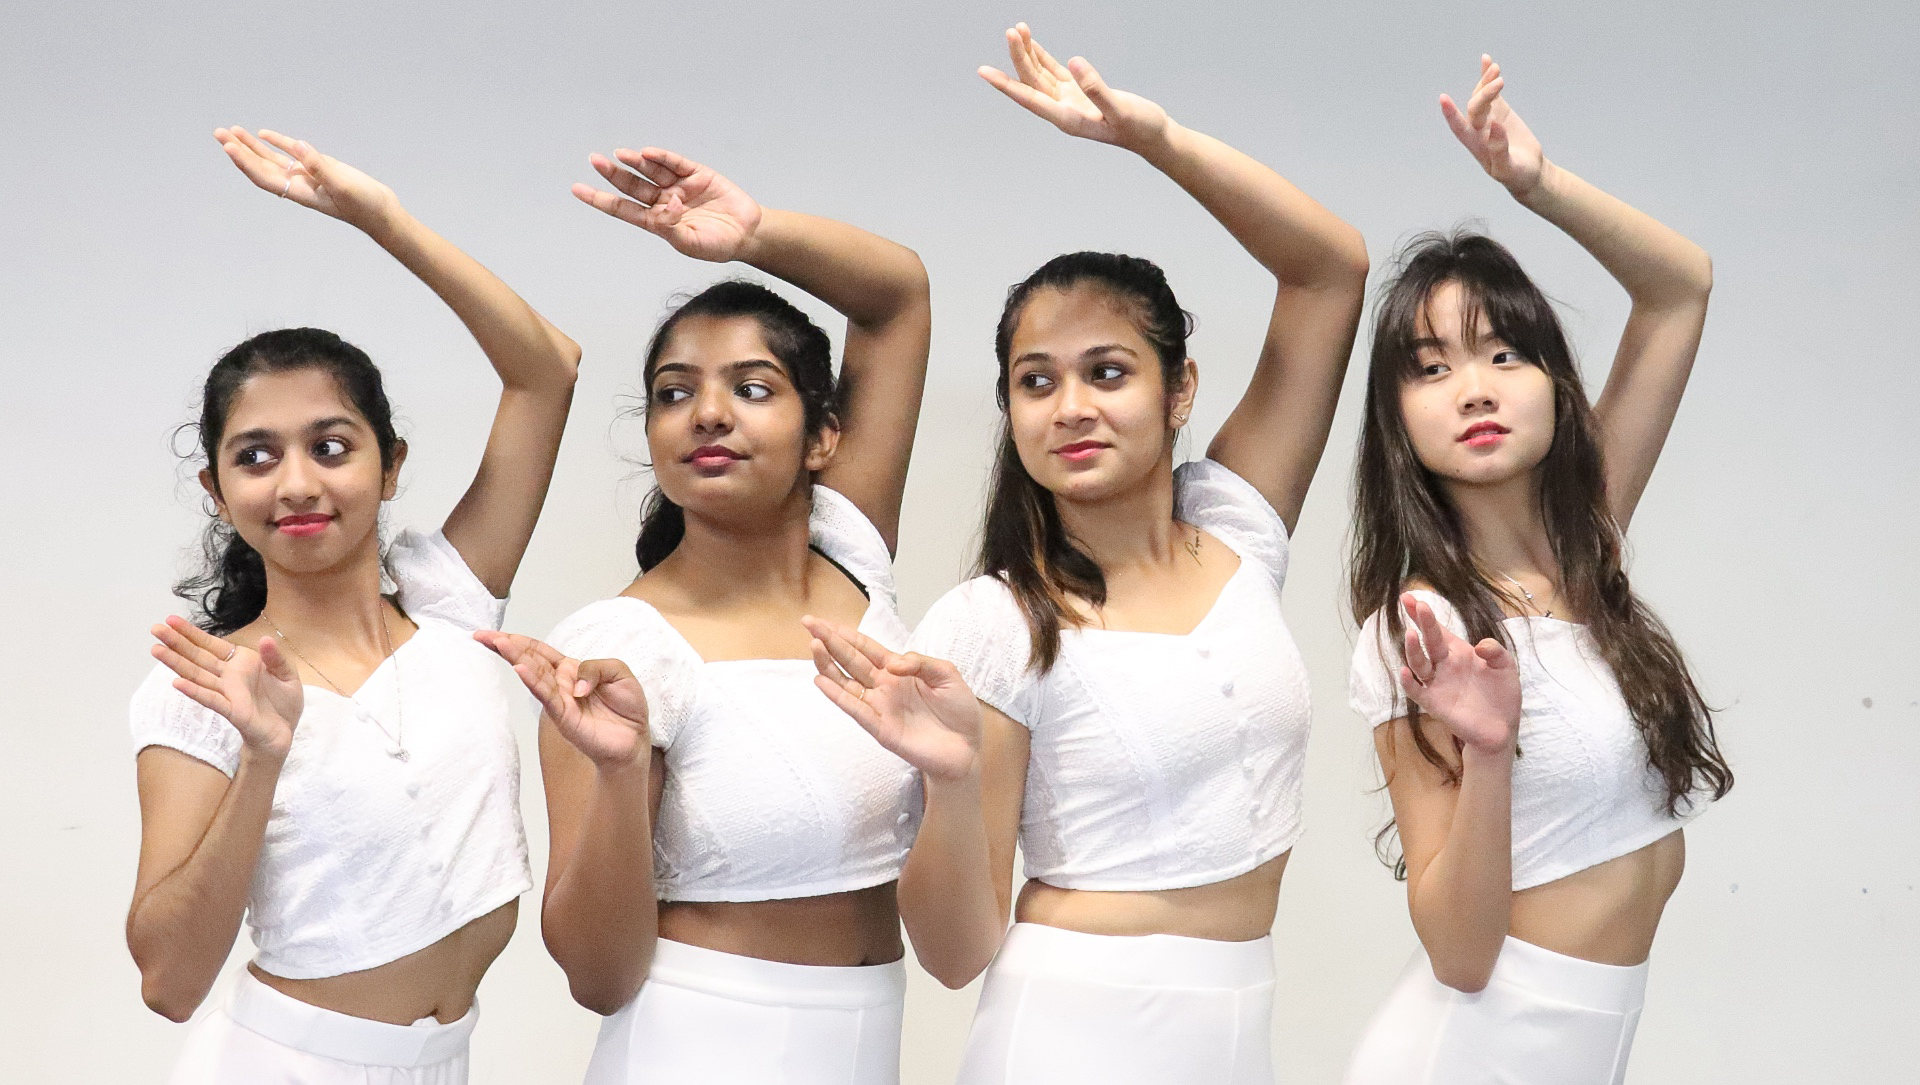 [Dance Performance] Nruthya mein Ekta (Unity in Dance) by LASALLE Diploma in Dance students. Photo Courtesy ARTWALK